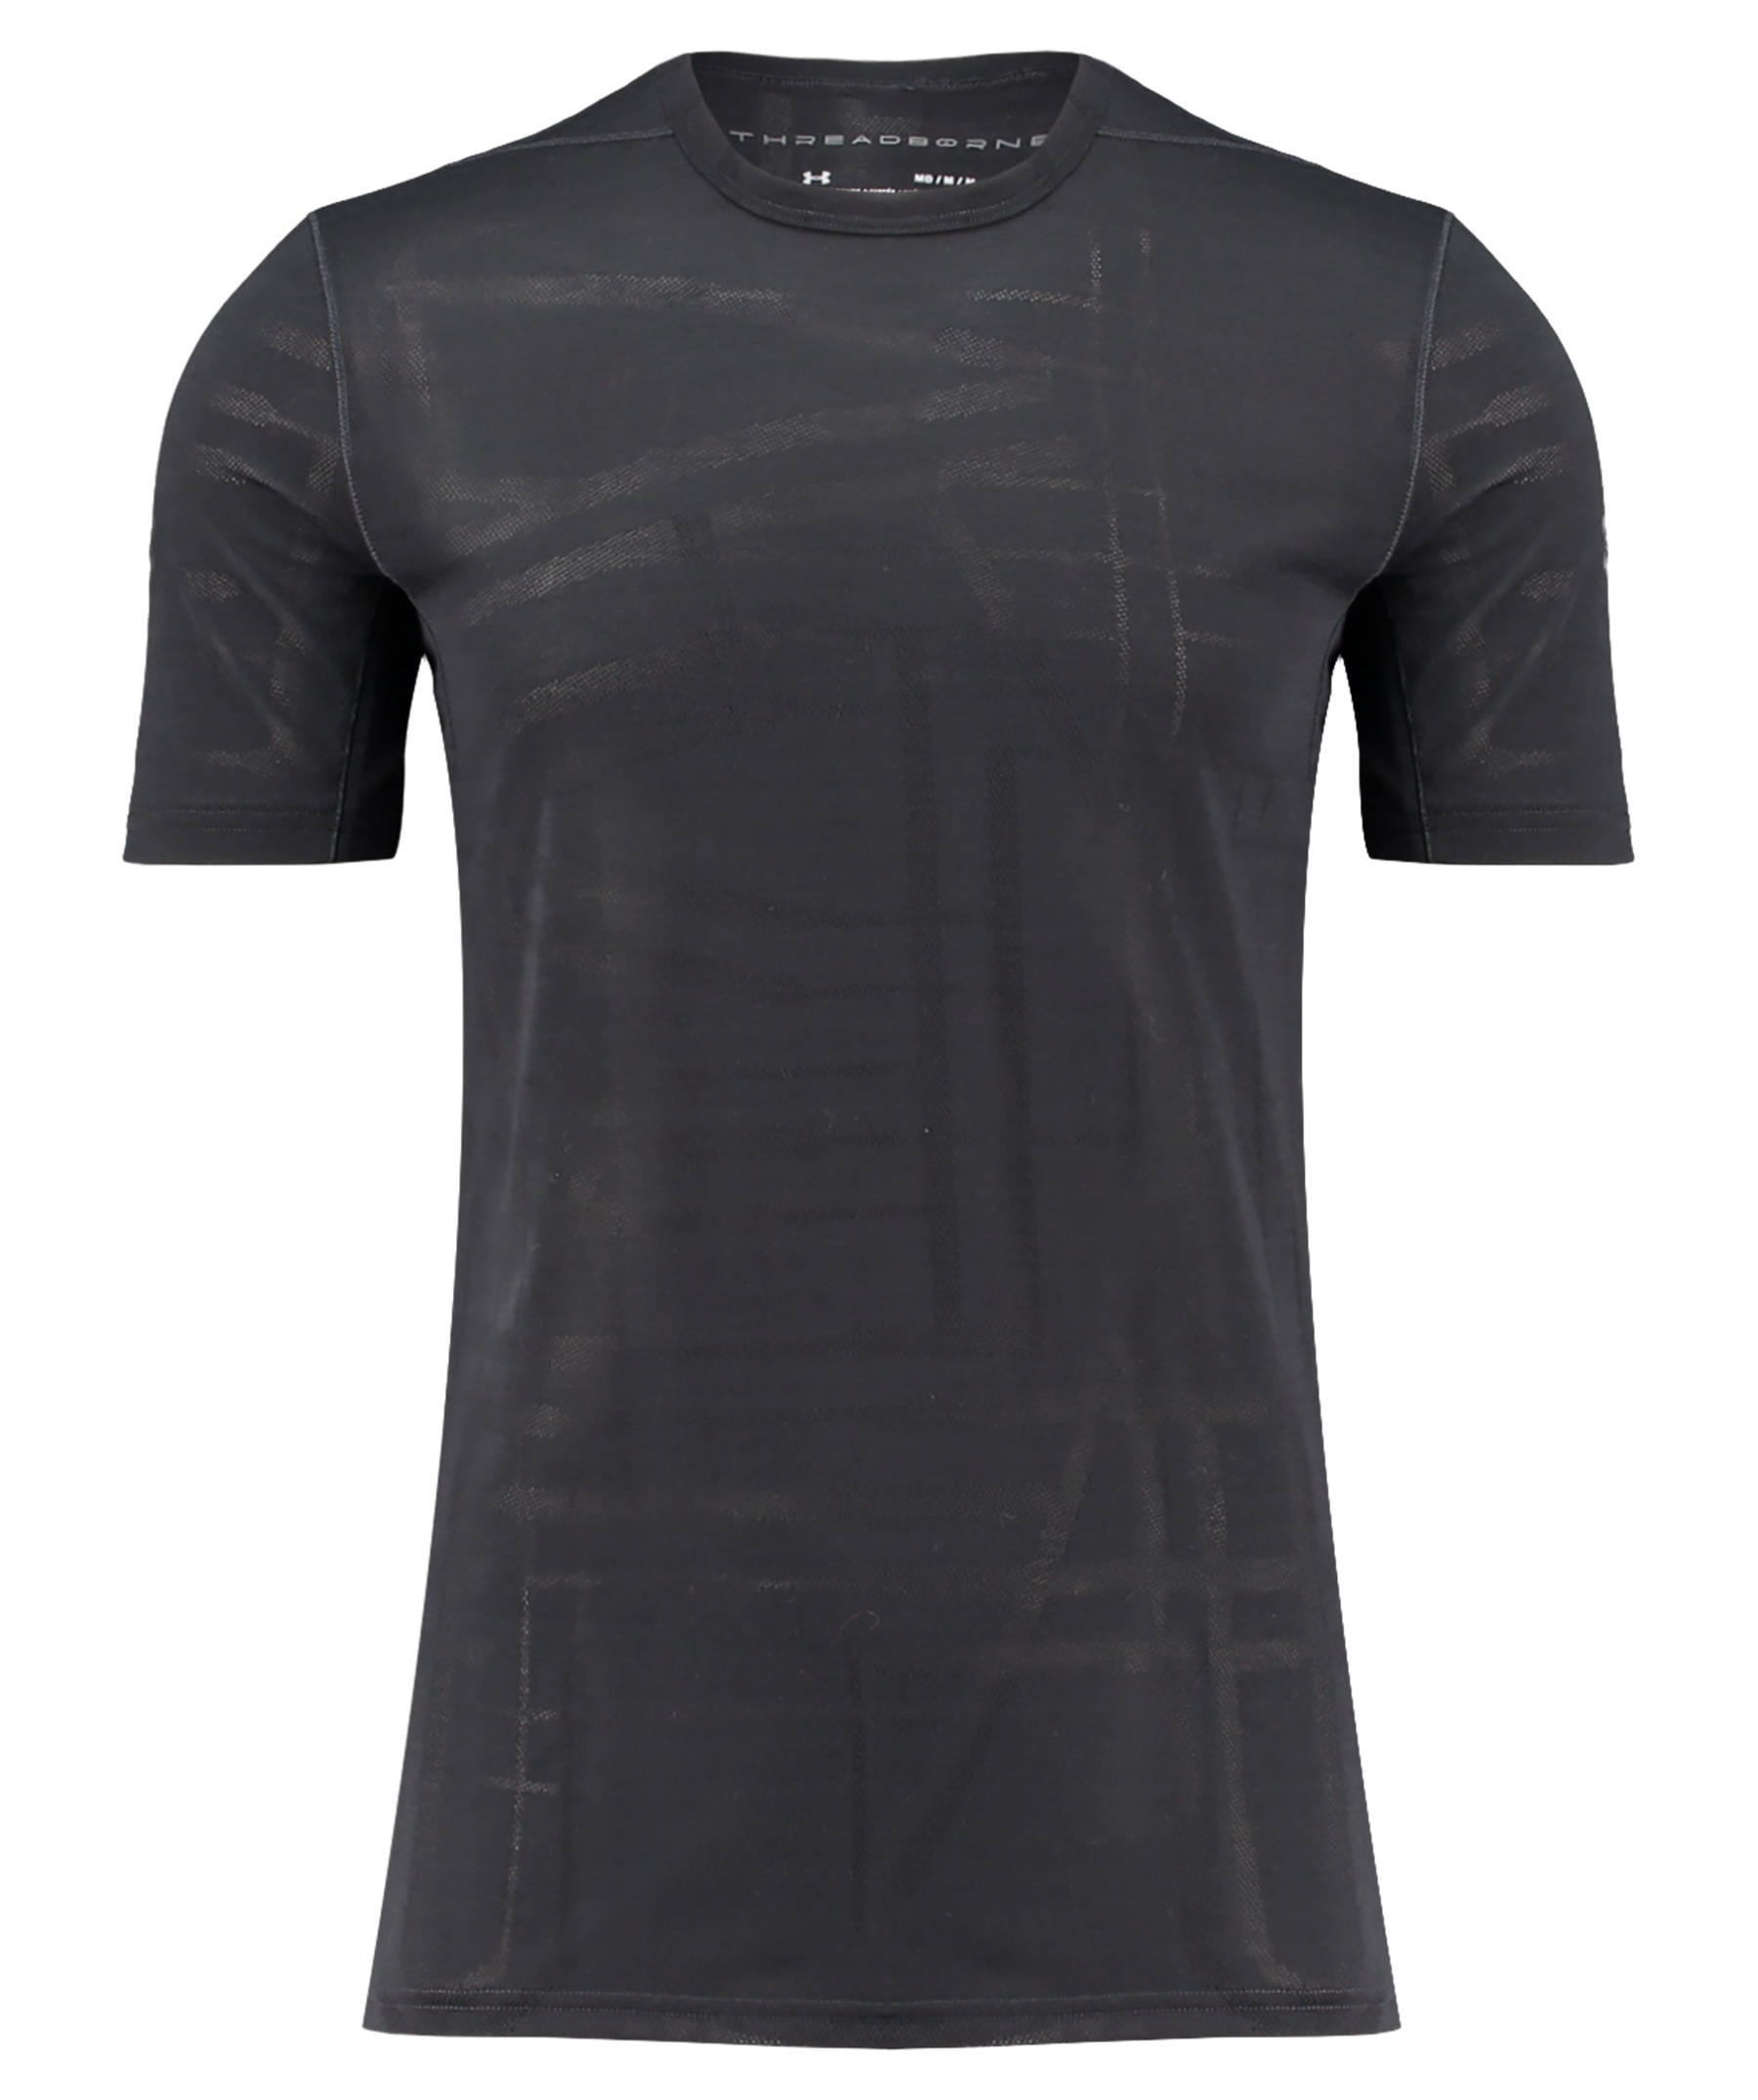 Under Armour Herren Trainingsshirt Kurzarm